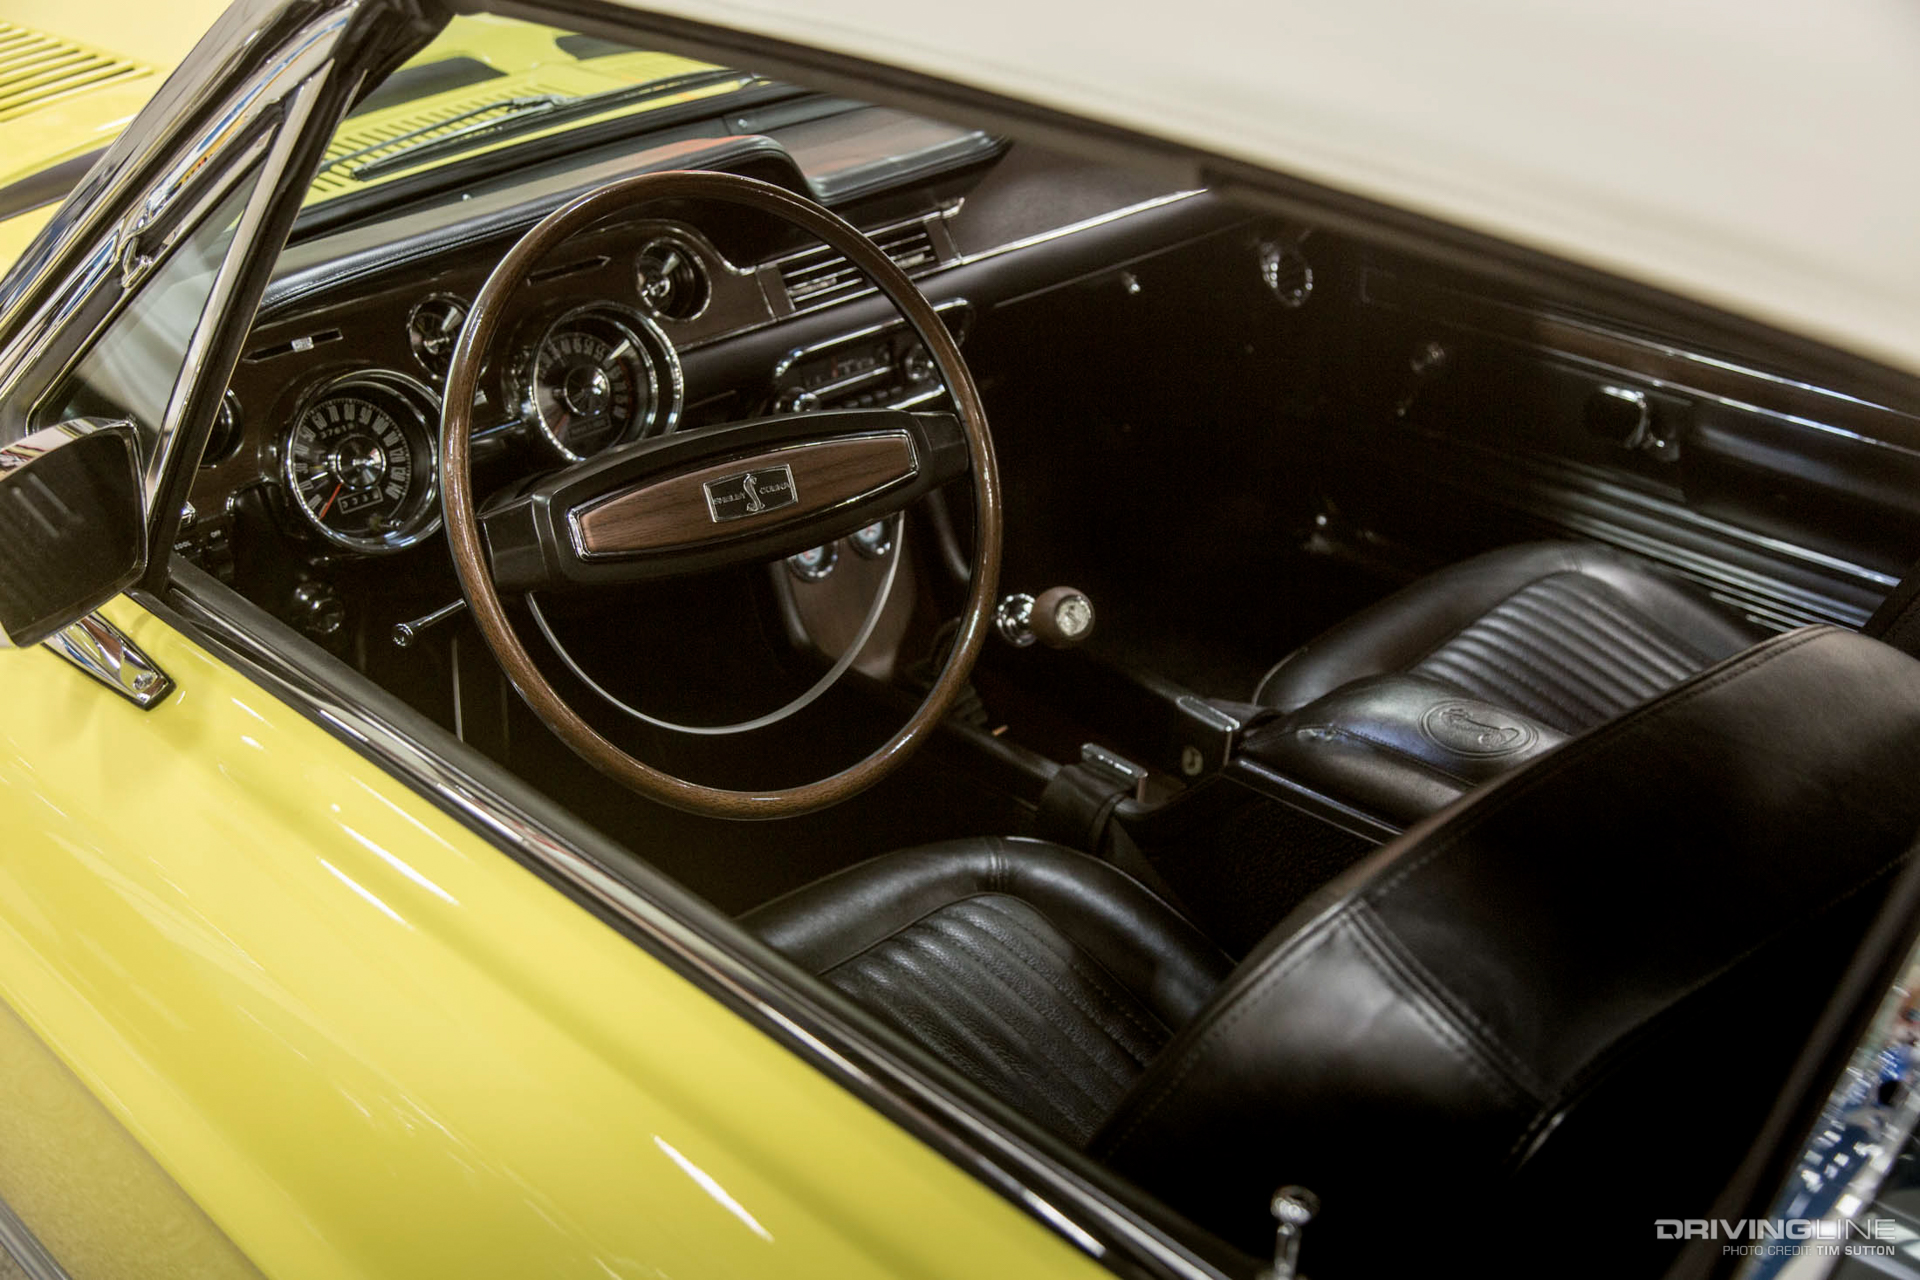 Learn 10 Useful Tips For Getting Started In Classic Car Restoration